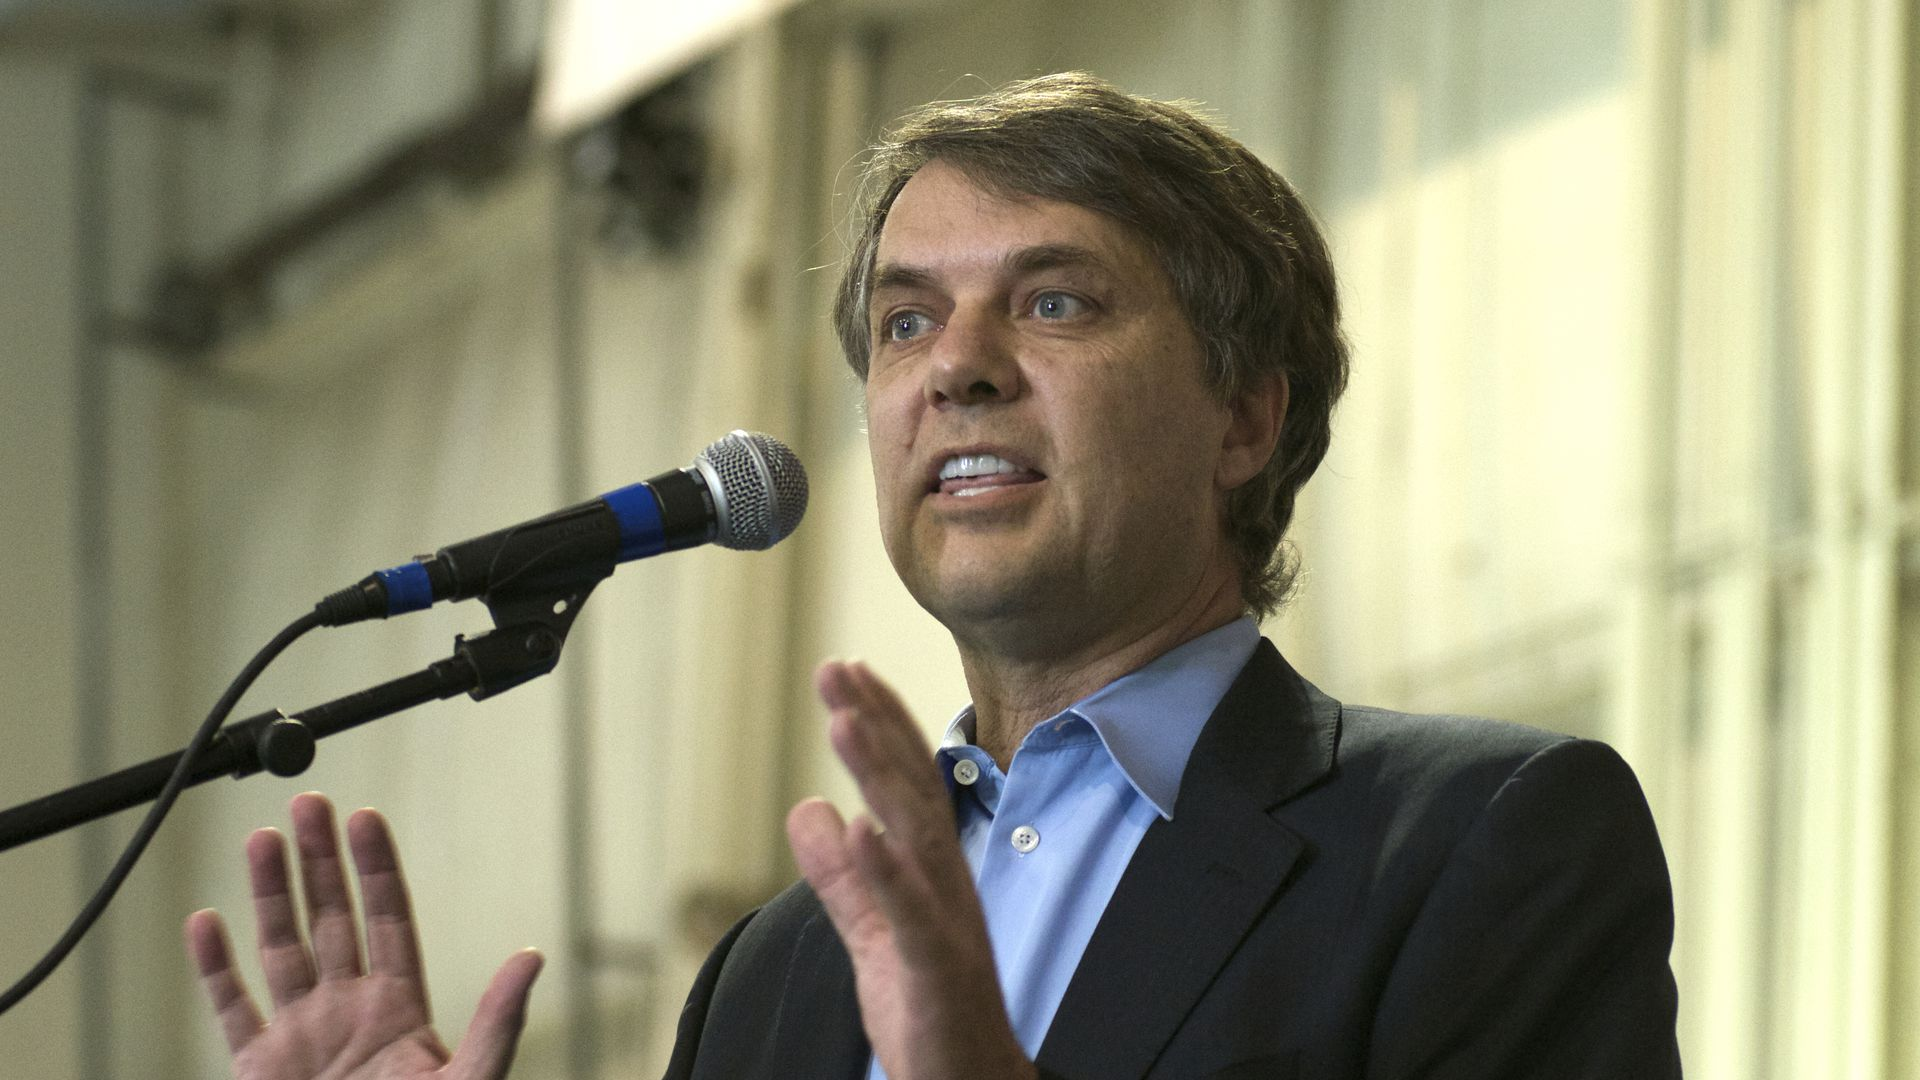 Kansas governor Jeff Colyer will sign a bill that would allow discrimination against adopting gay couples. Mark Reinstein/Corbis via Getty Images.